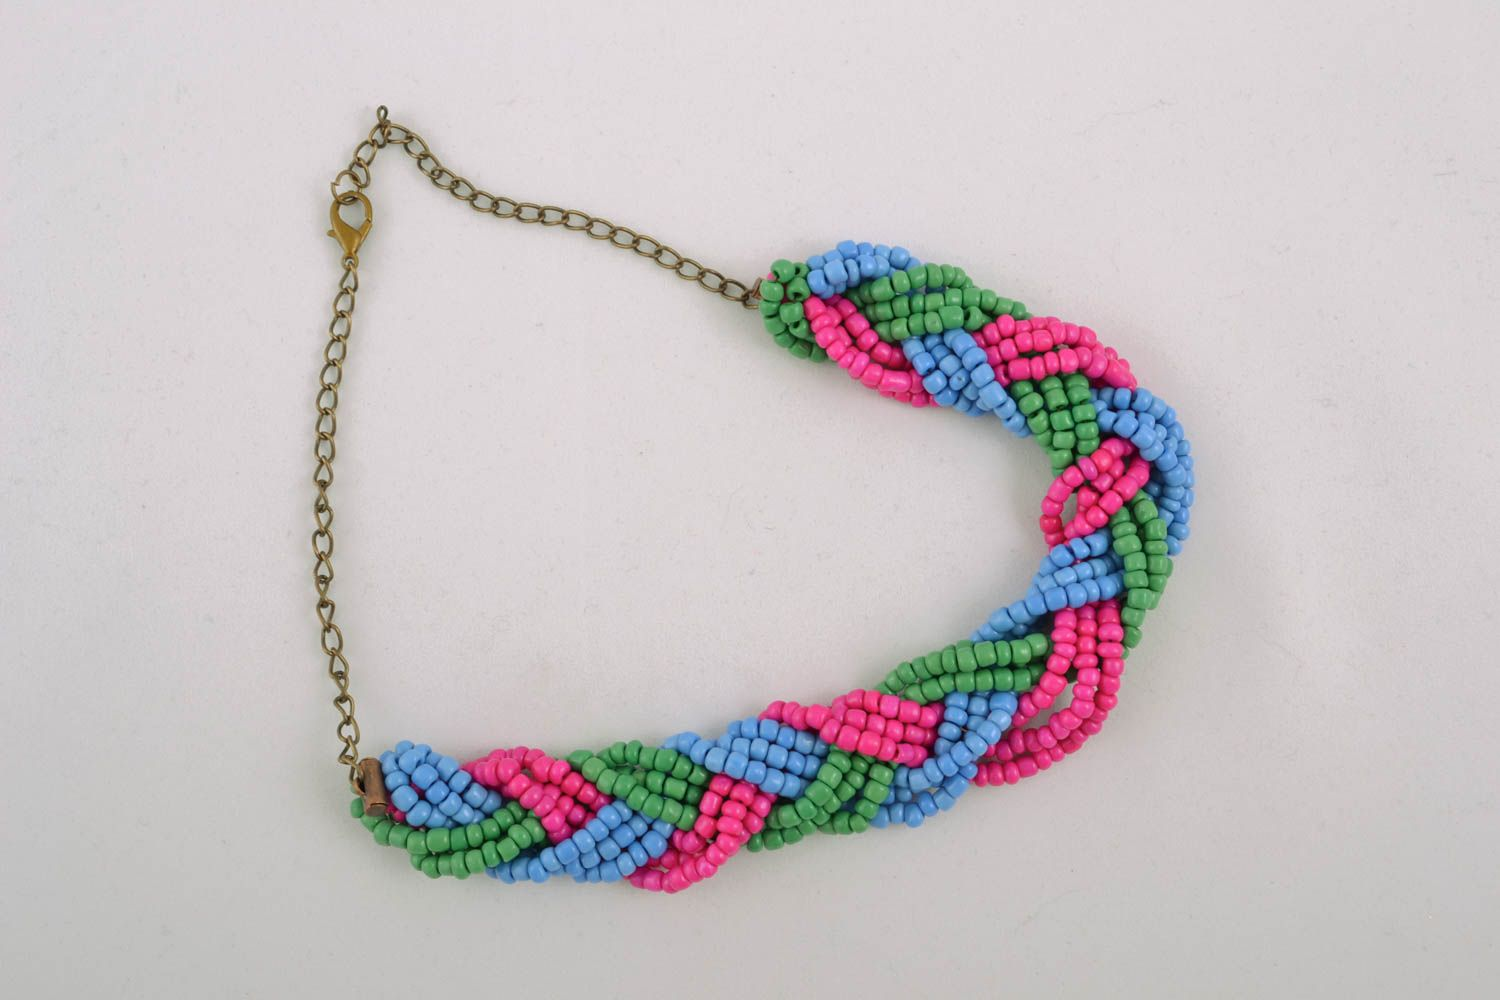 Beaded necklace with chain photo 1